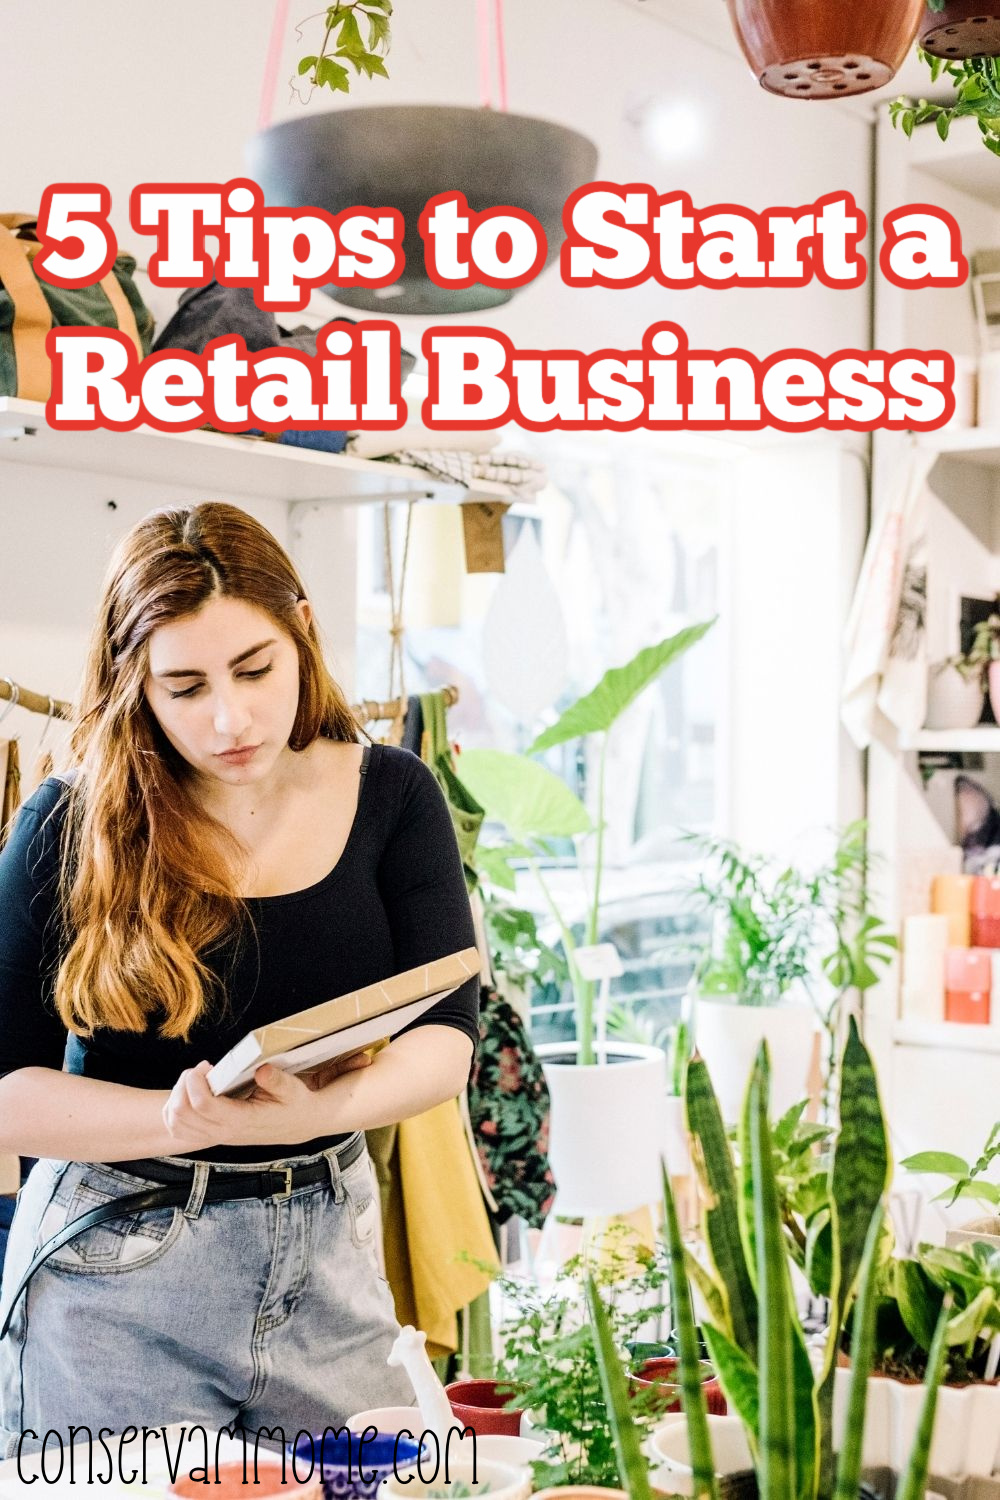 5 tips to start a retail business